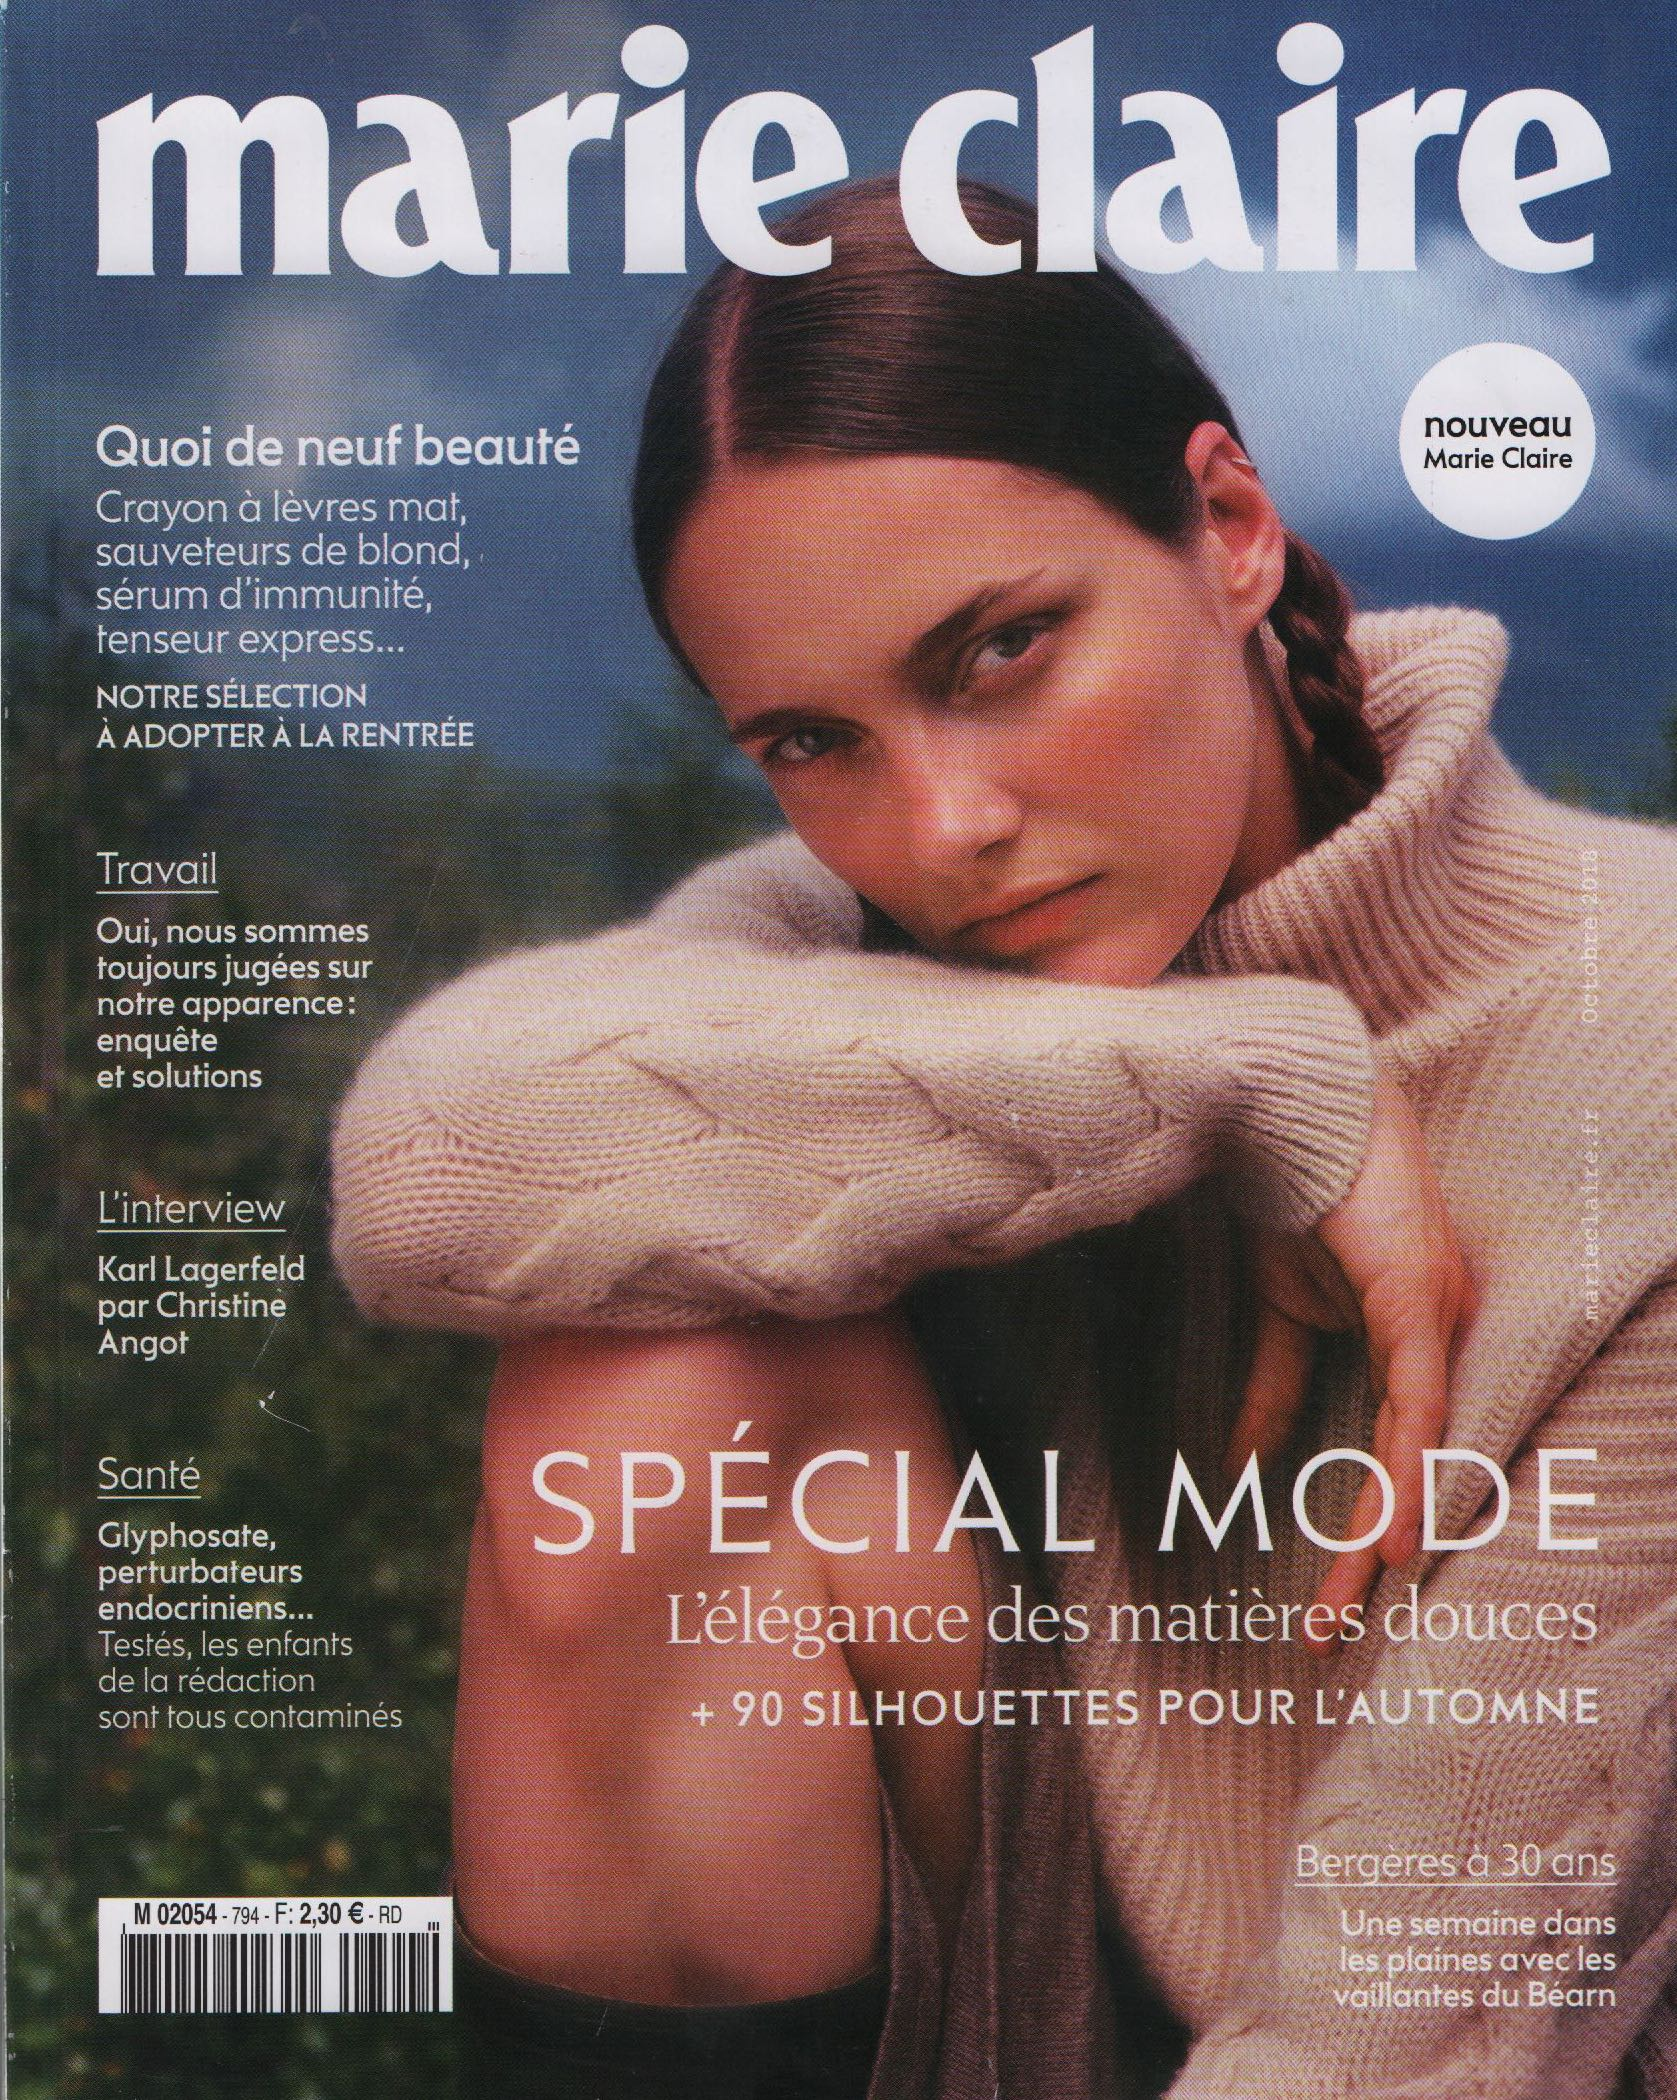 MARIE CLAIRE SPECIAL MODE Octobre 2018 Cover.jpg